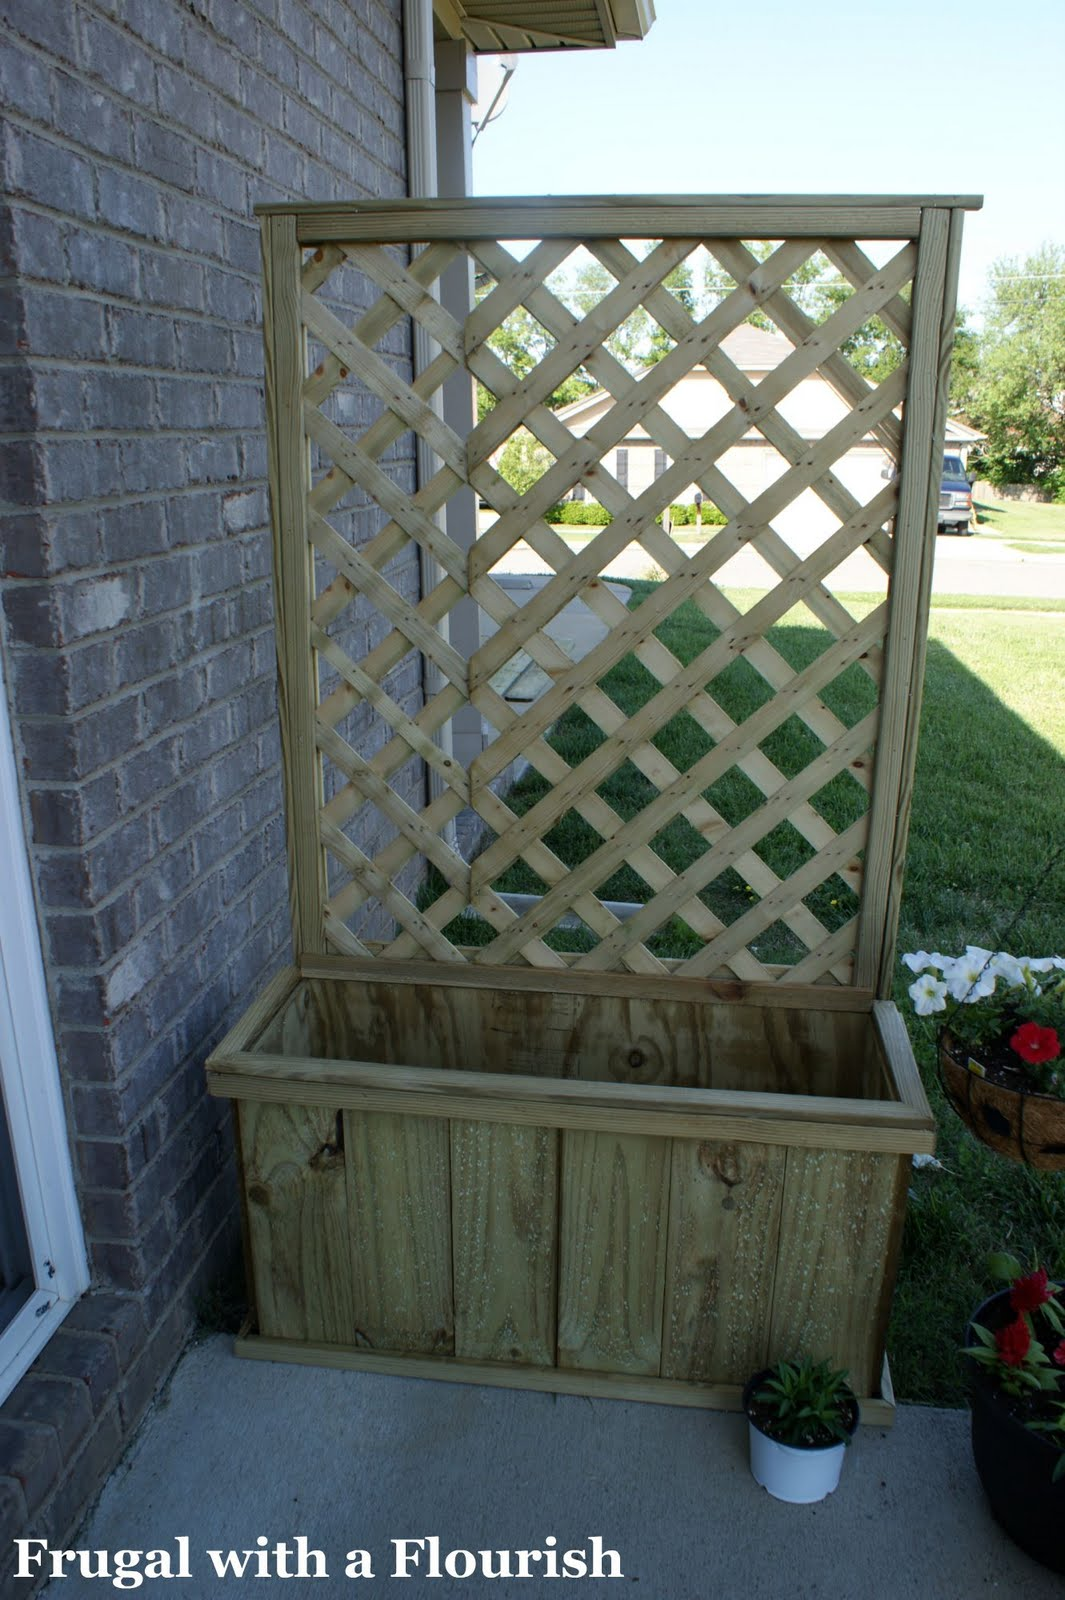 Diy Deck Flower Boxes Frugal With A Flourish How To Build A Lattice Planter Box